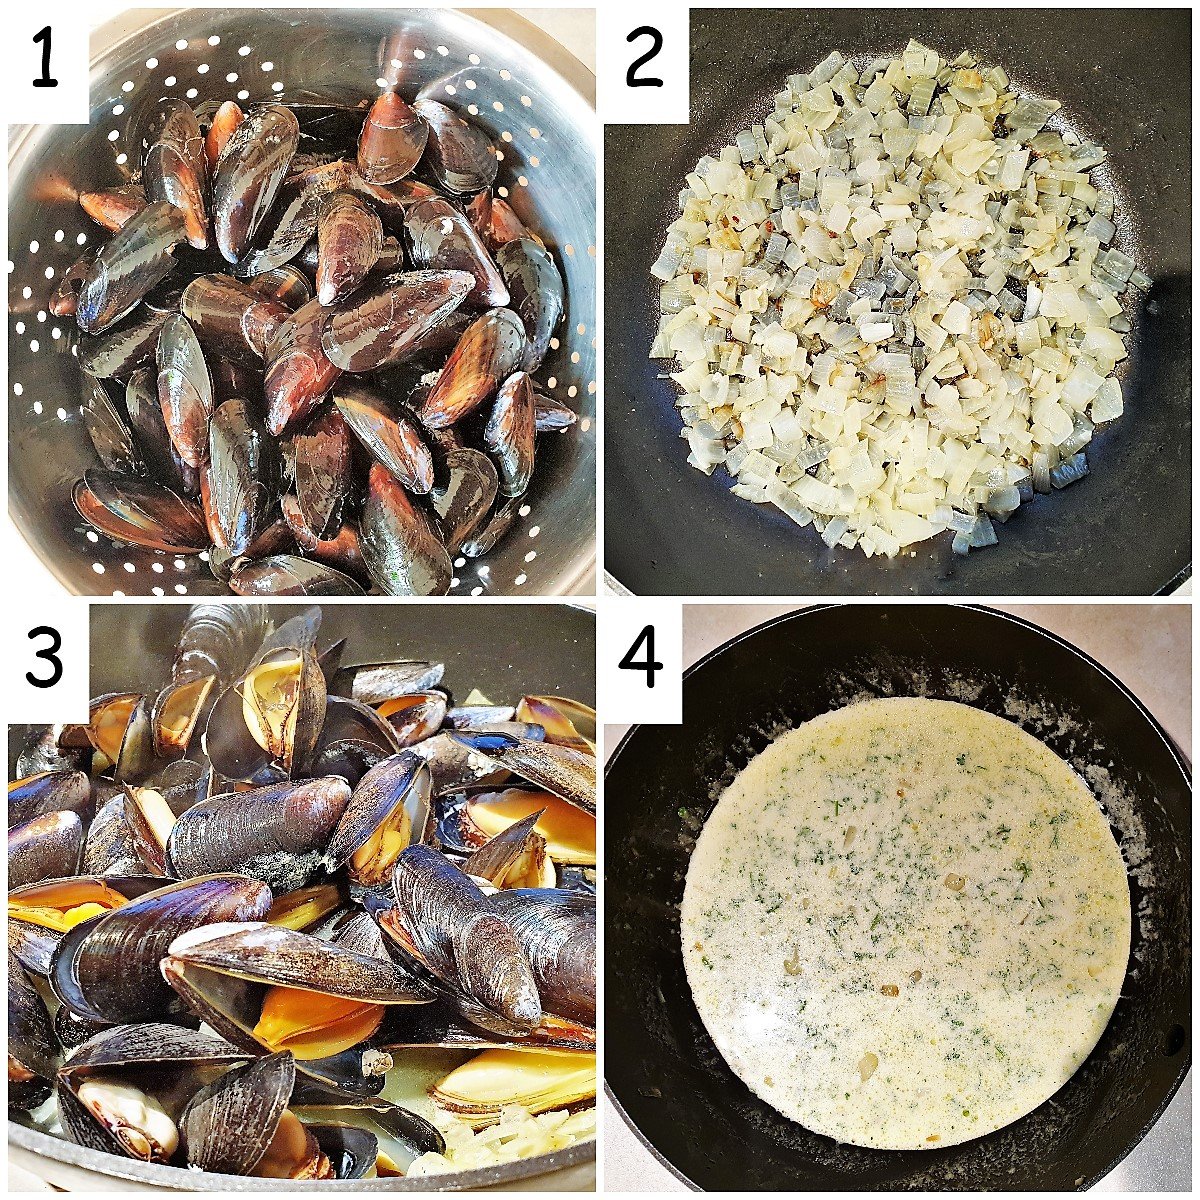 steps for cooking fresh mussels in a creamy garlic sauce.